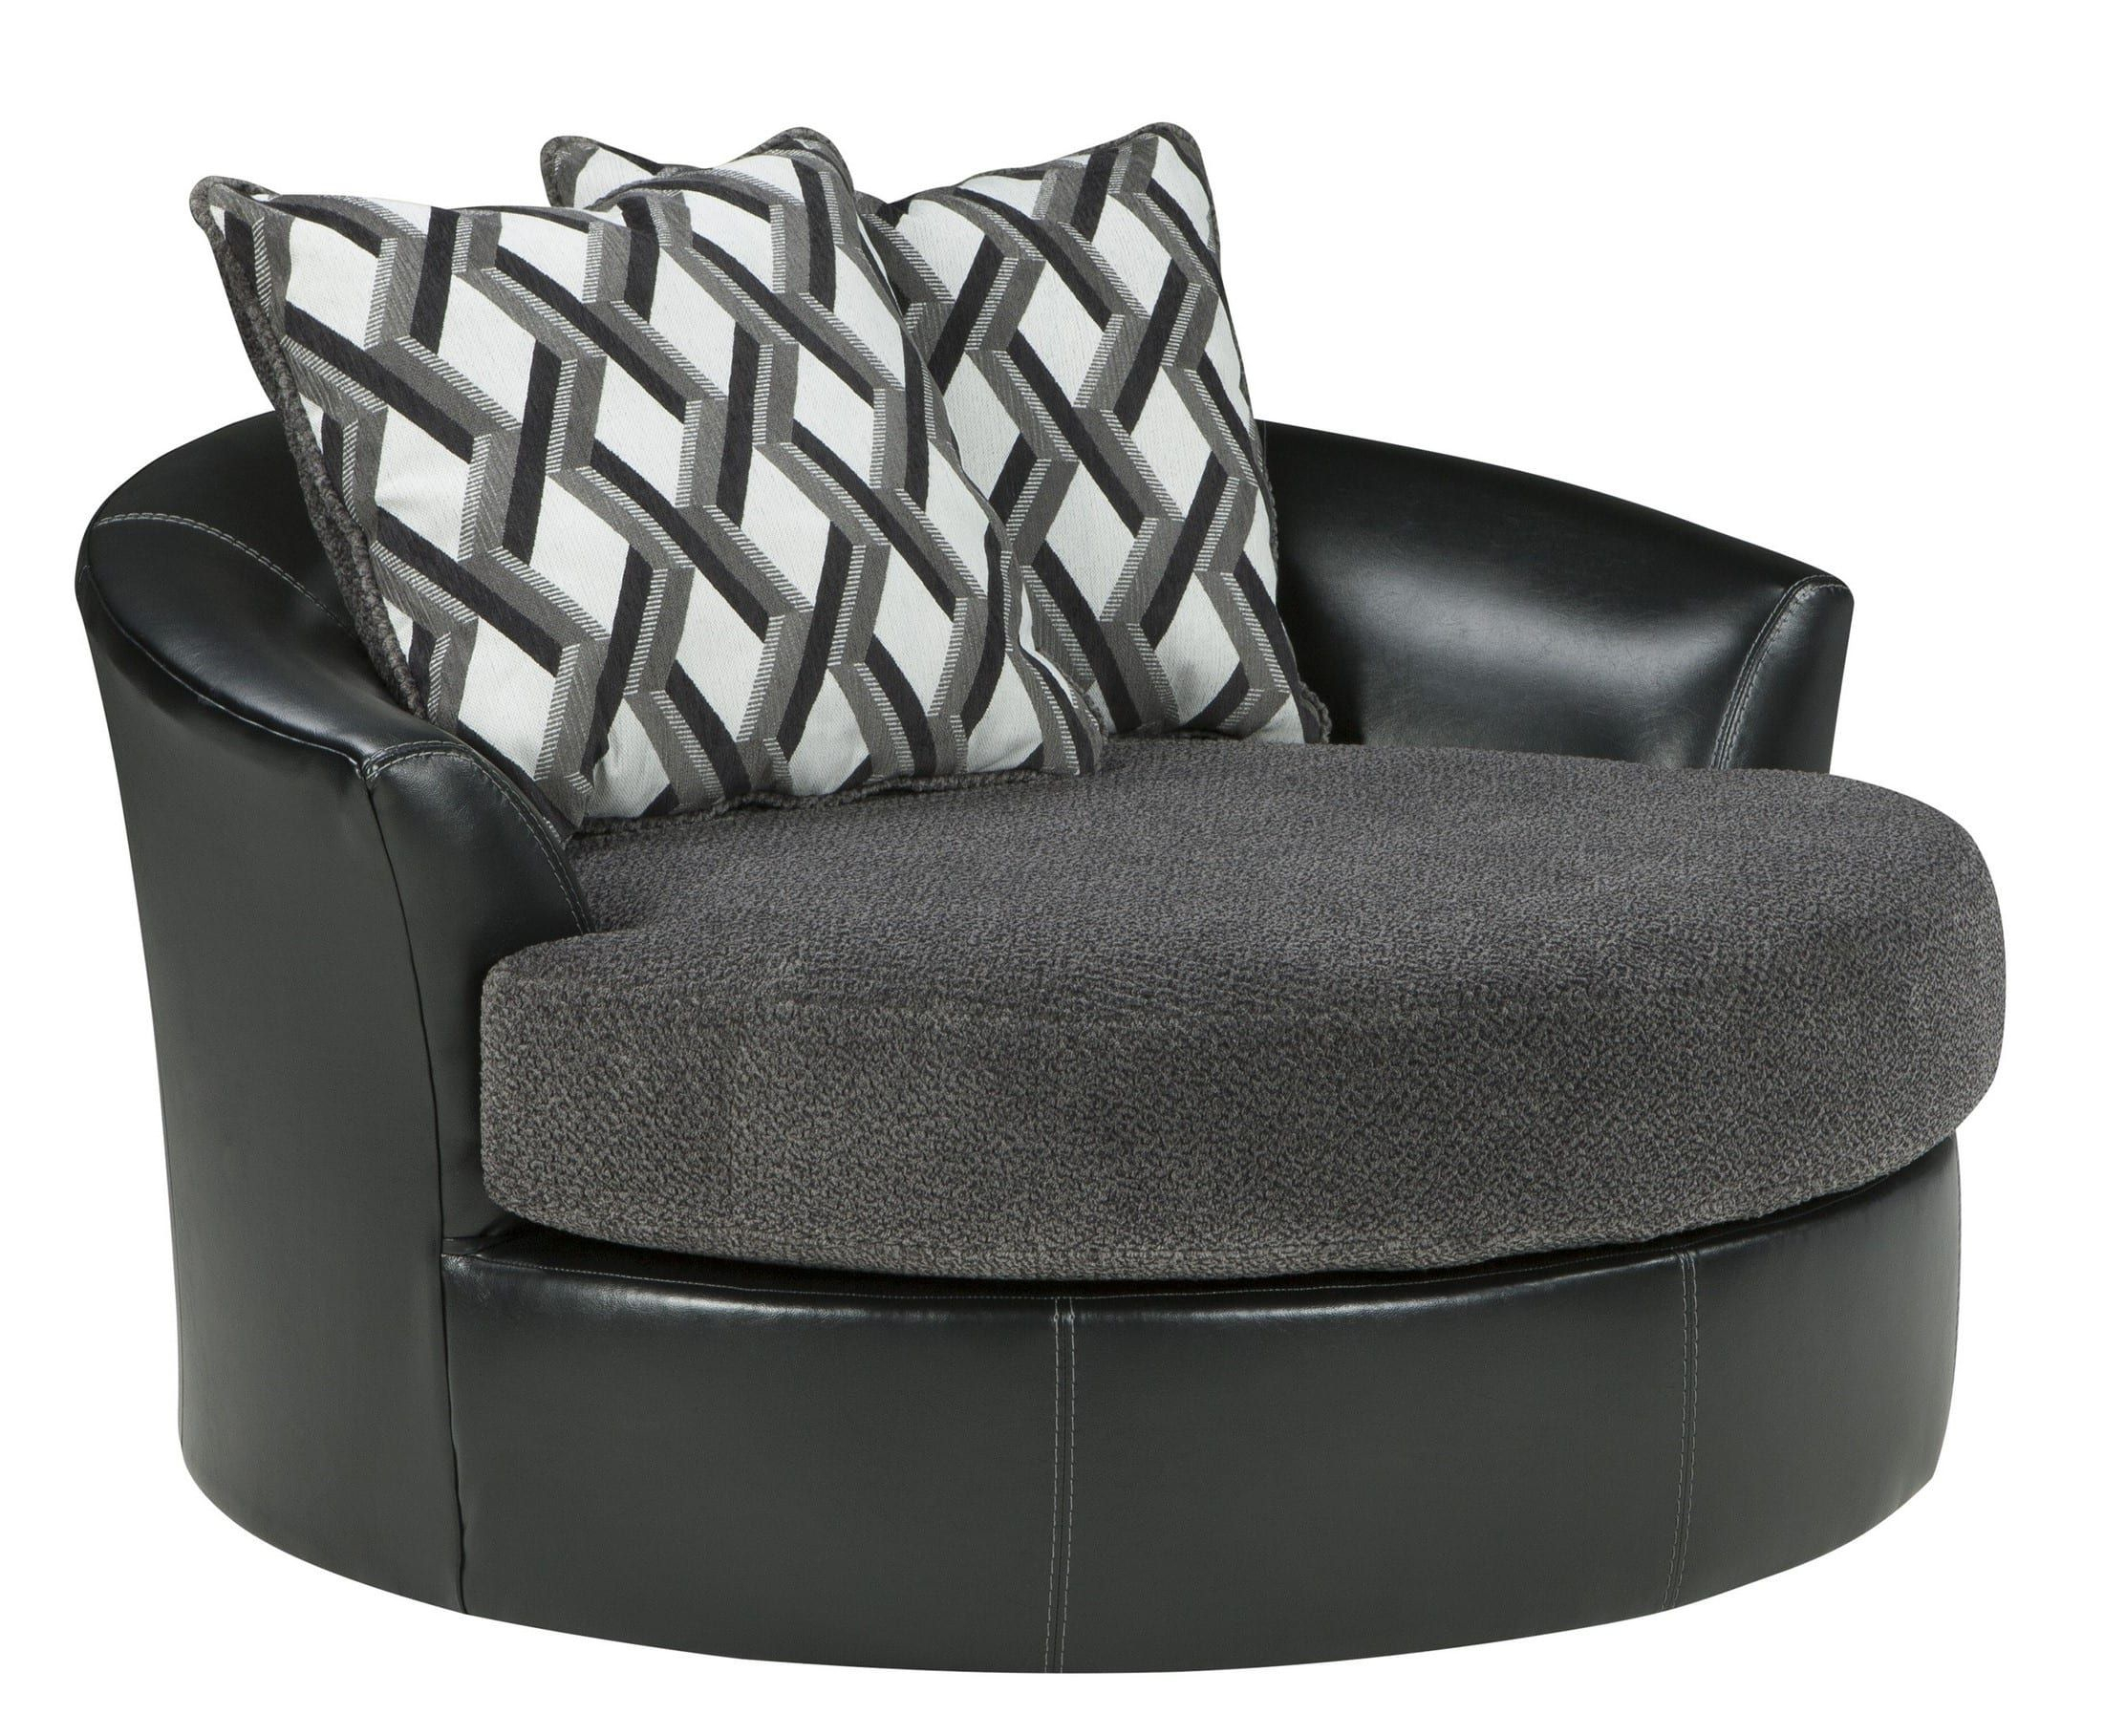 Kumasi Smoke Oversized Swivel Accent Chair | Interior Decorating In Mesa Foam Oversized Sofa Chairs (Image 13 of 25)